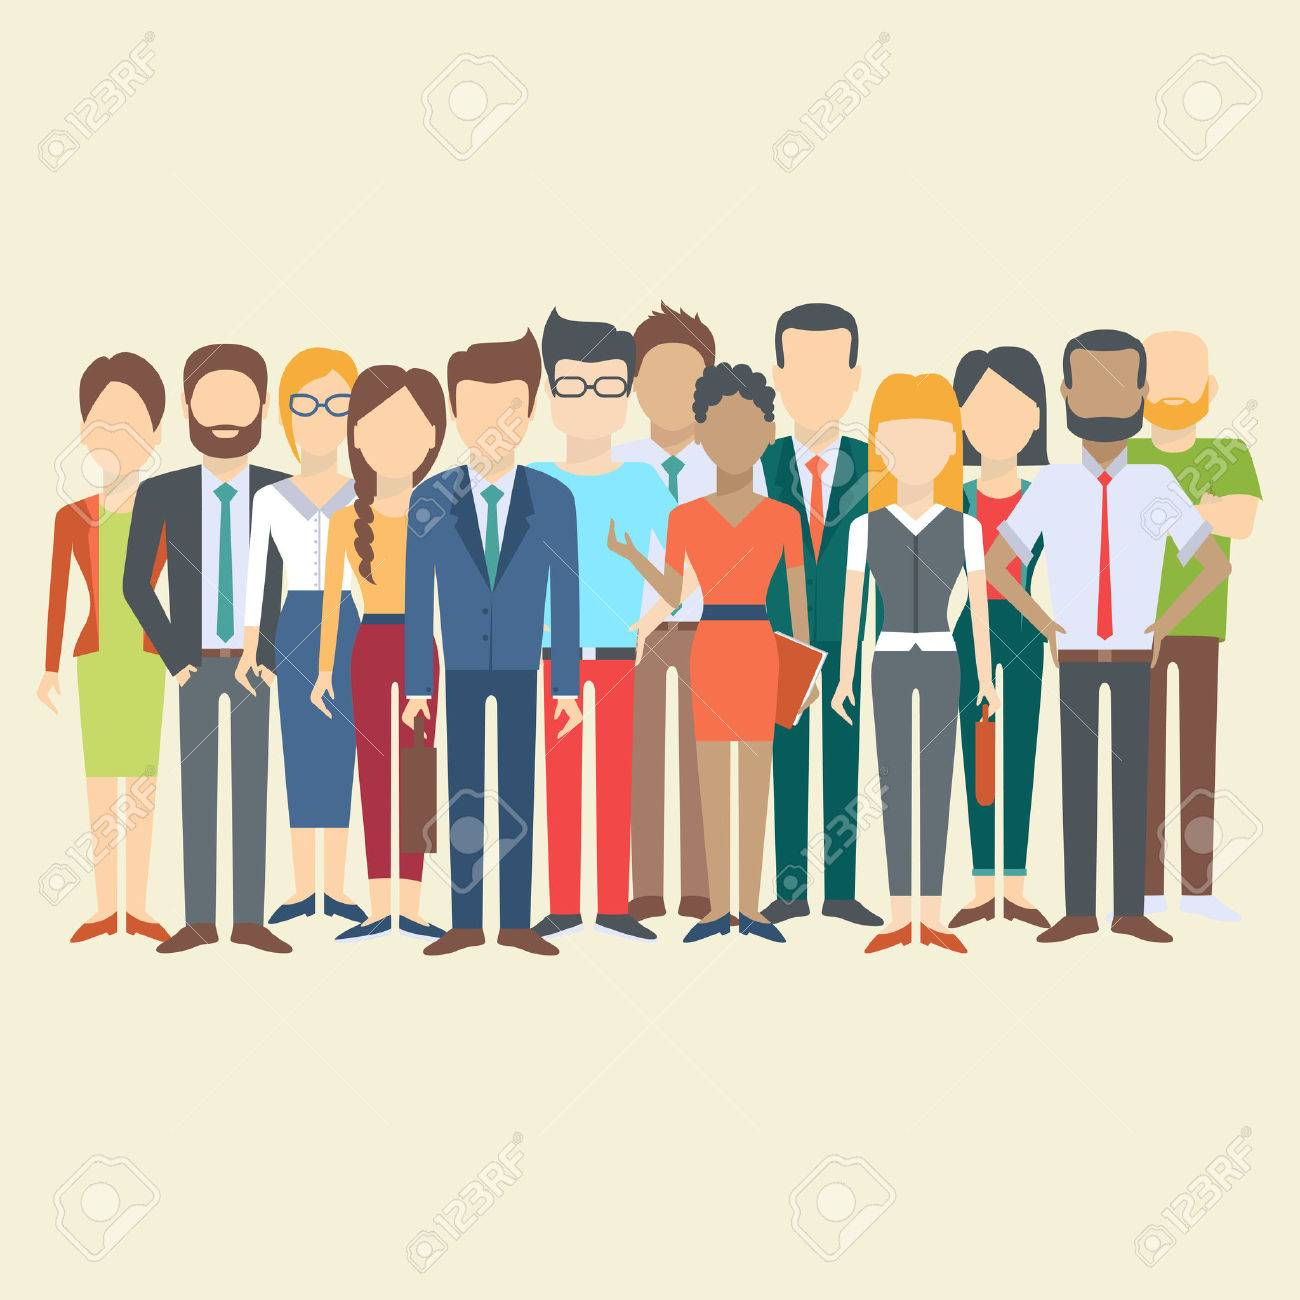 Set of business people, collection of diverse characters in flat cartoon style, vector illustration - 60236048